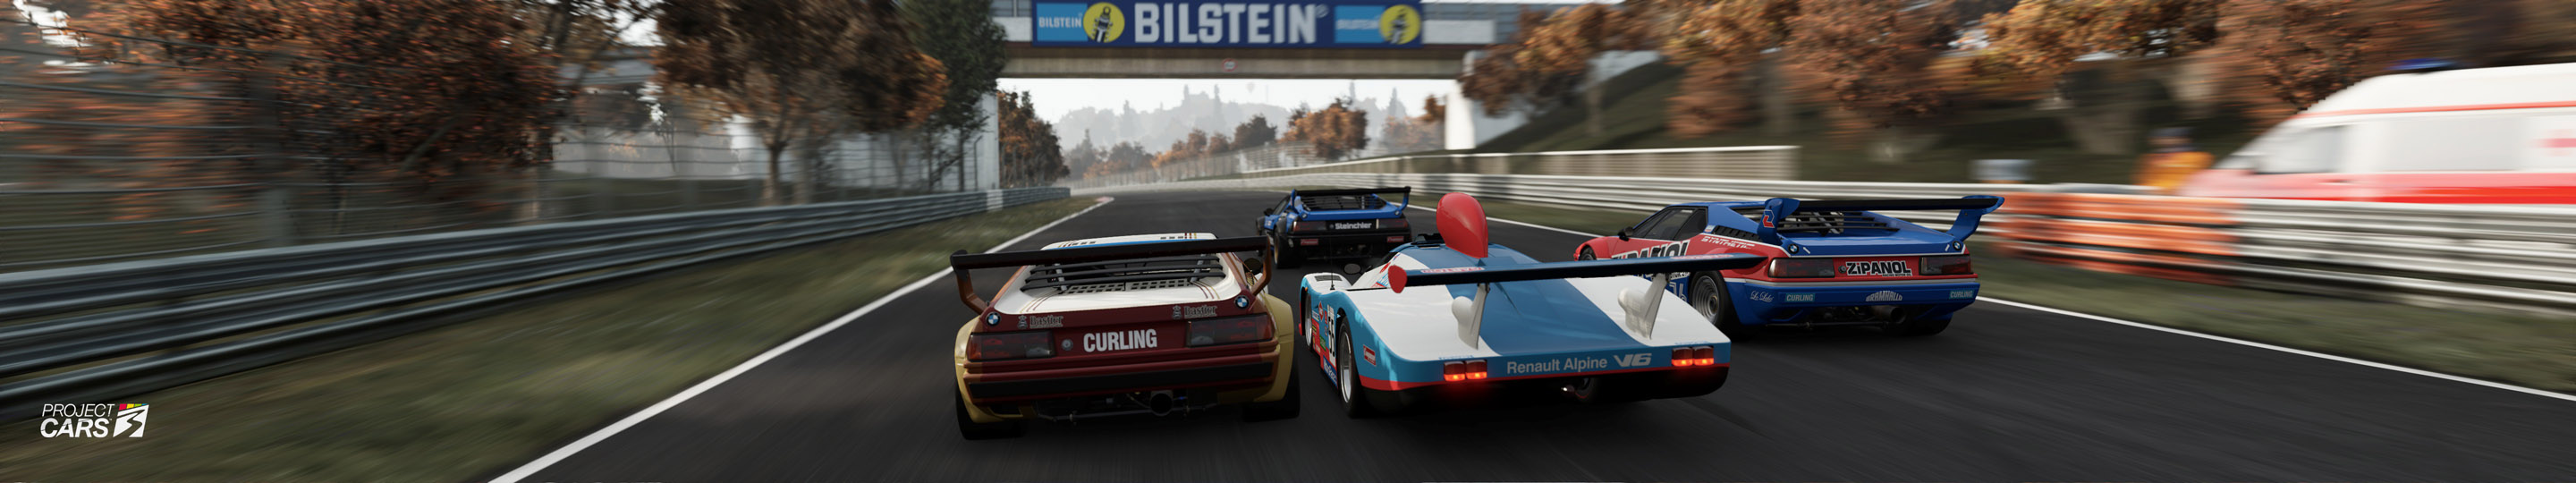 4 PROJECT CARS 3 ALPINE A442B at NORDSCHLEIFE copy.jpg